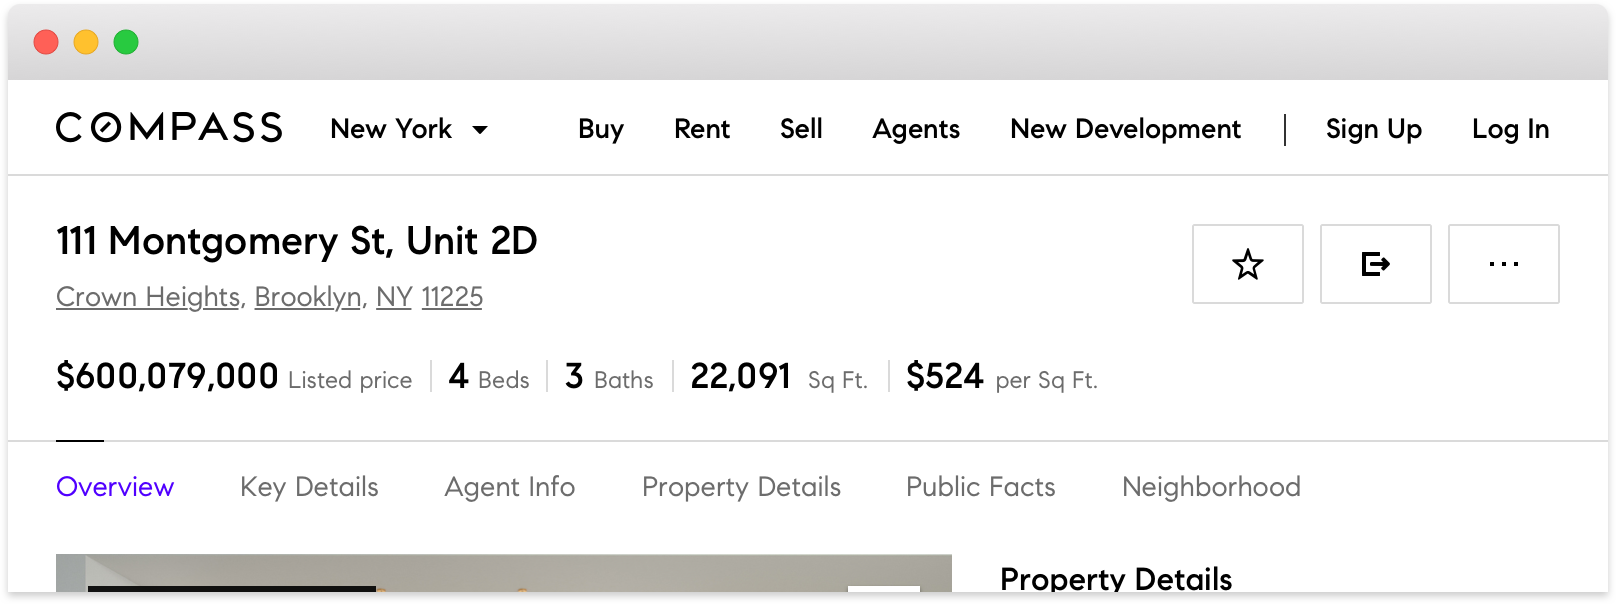 From 975px to 800px the listing details are wrapped to a 3rd line.  Widths below 800px break to our tablet and mobile layouts.